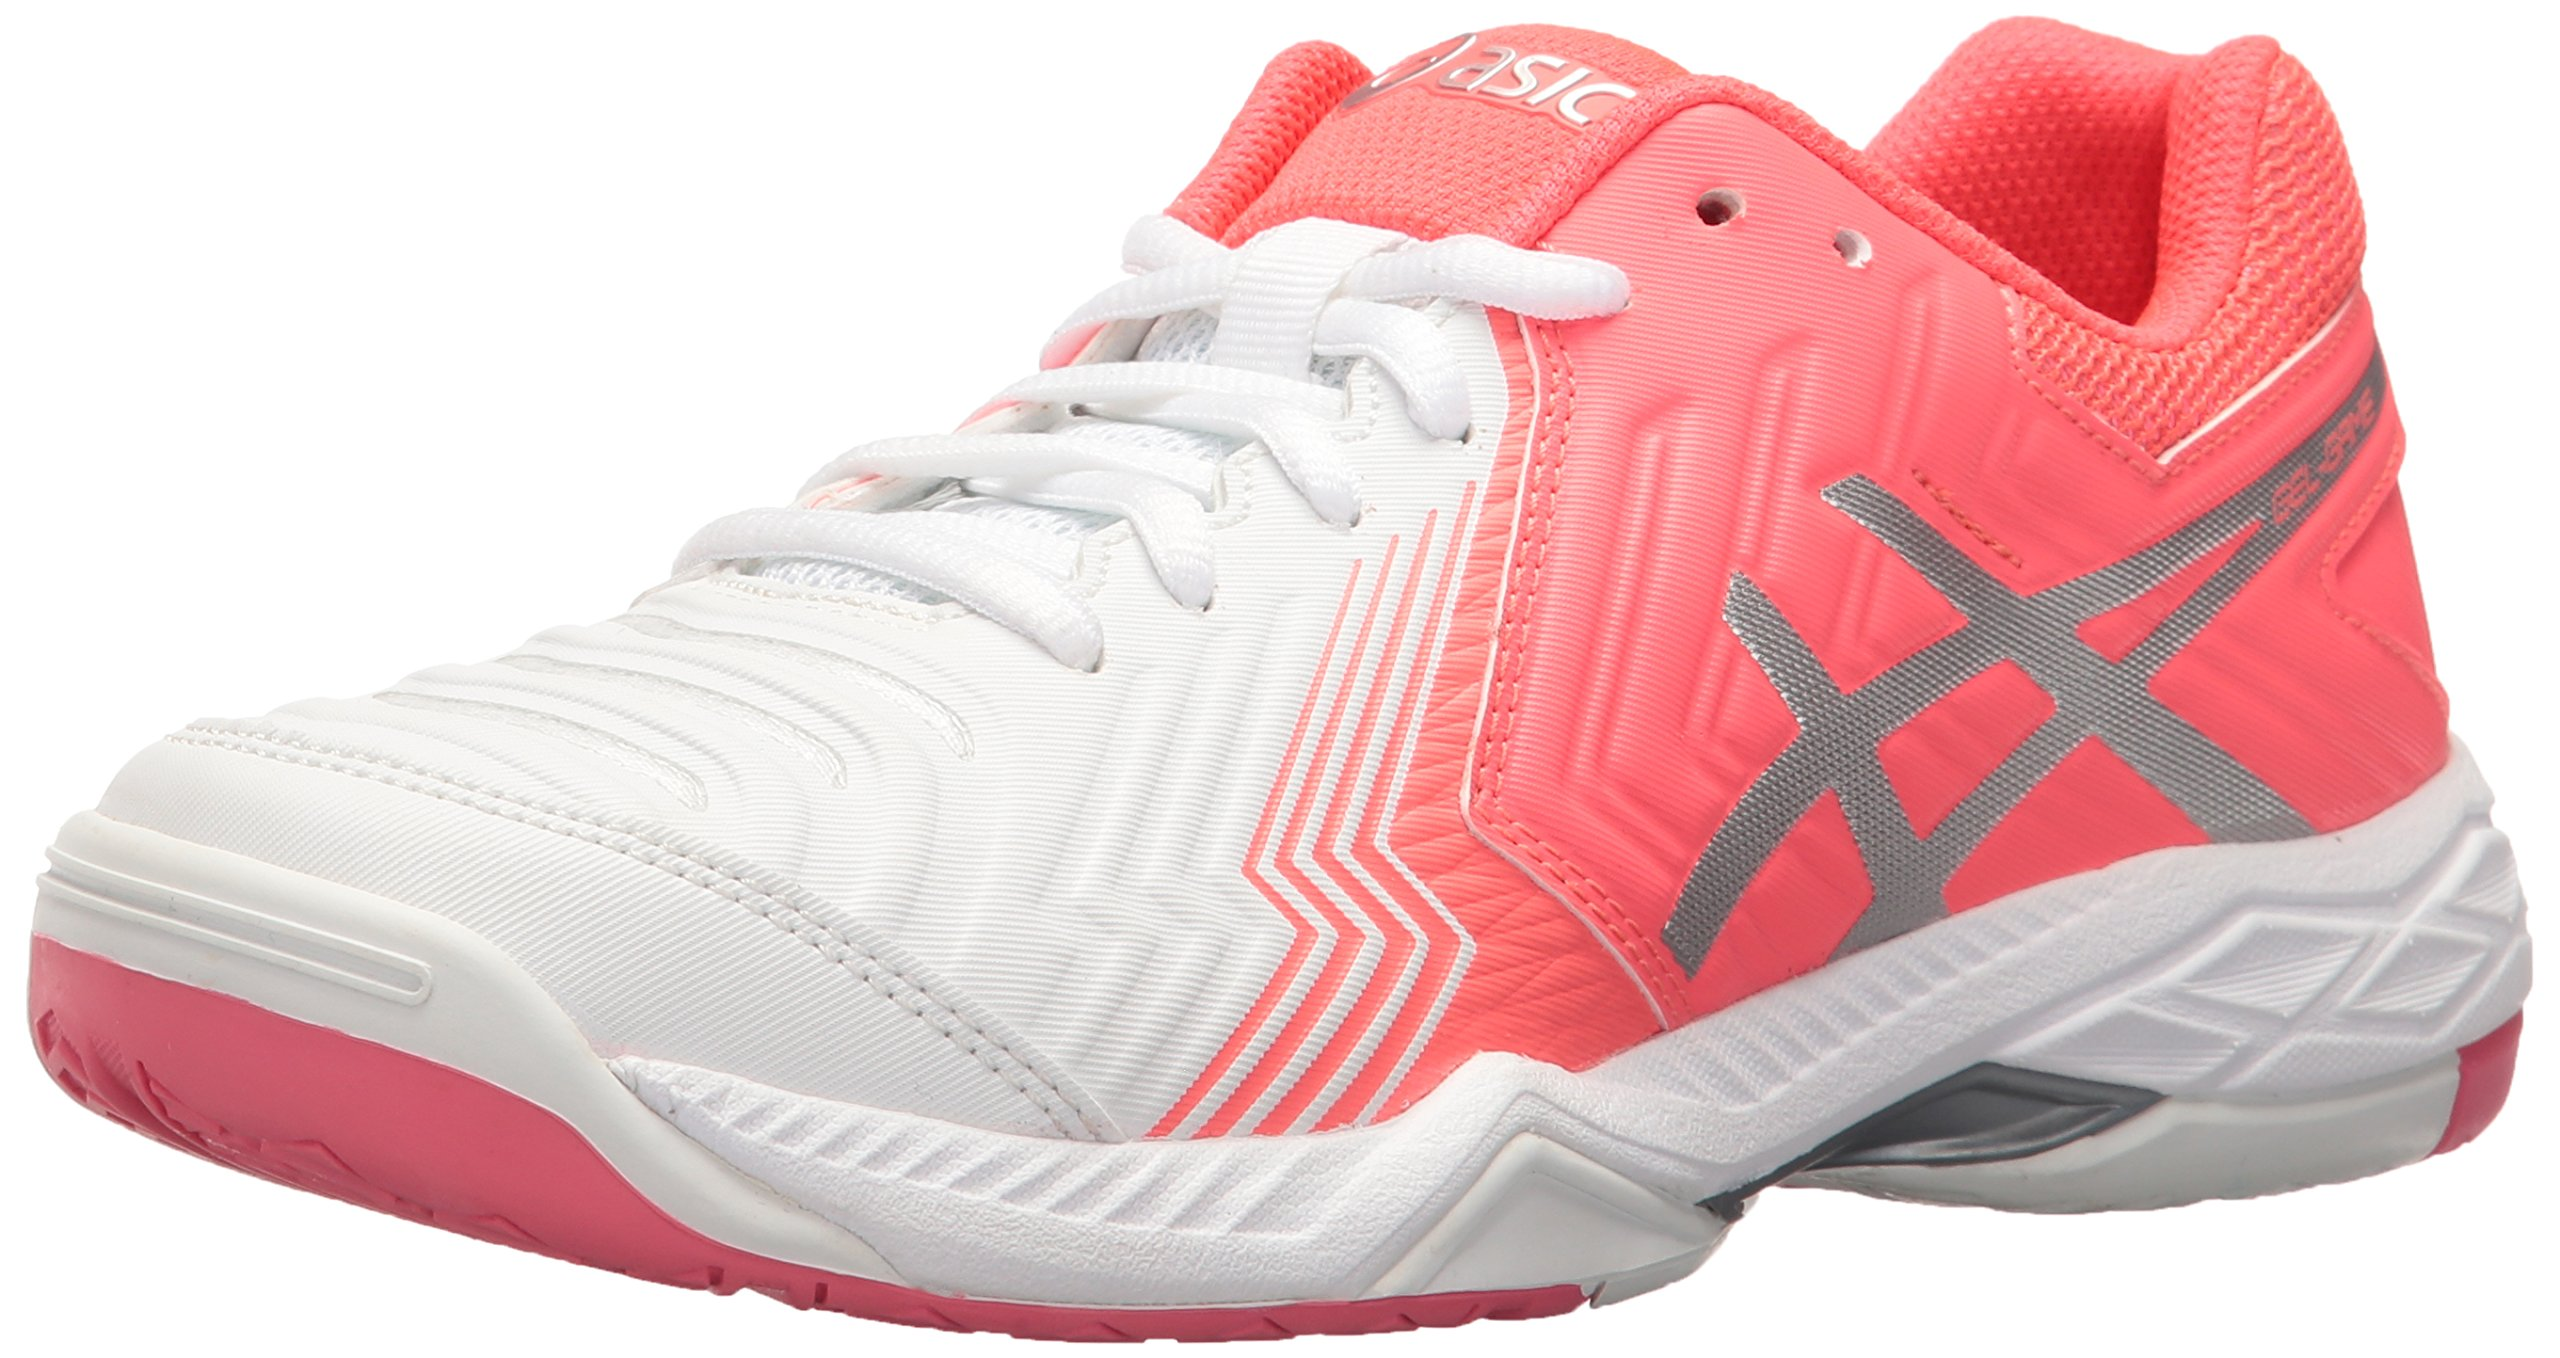 ASICS Women's Gel Game 6 Tennis Shoe WhiteDiva PinkSilver 9.5 M US